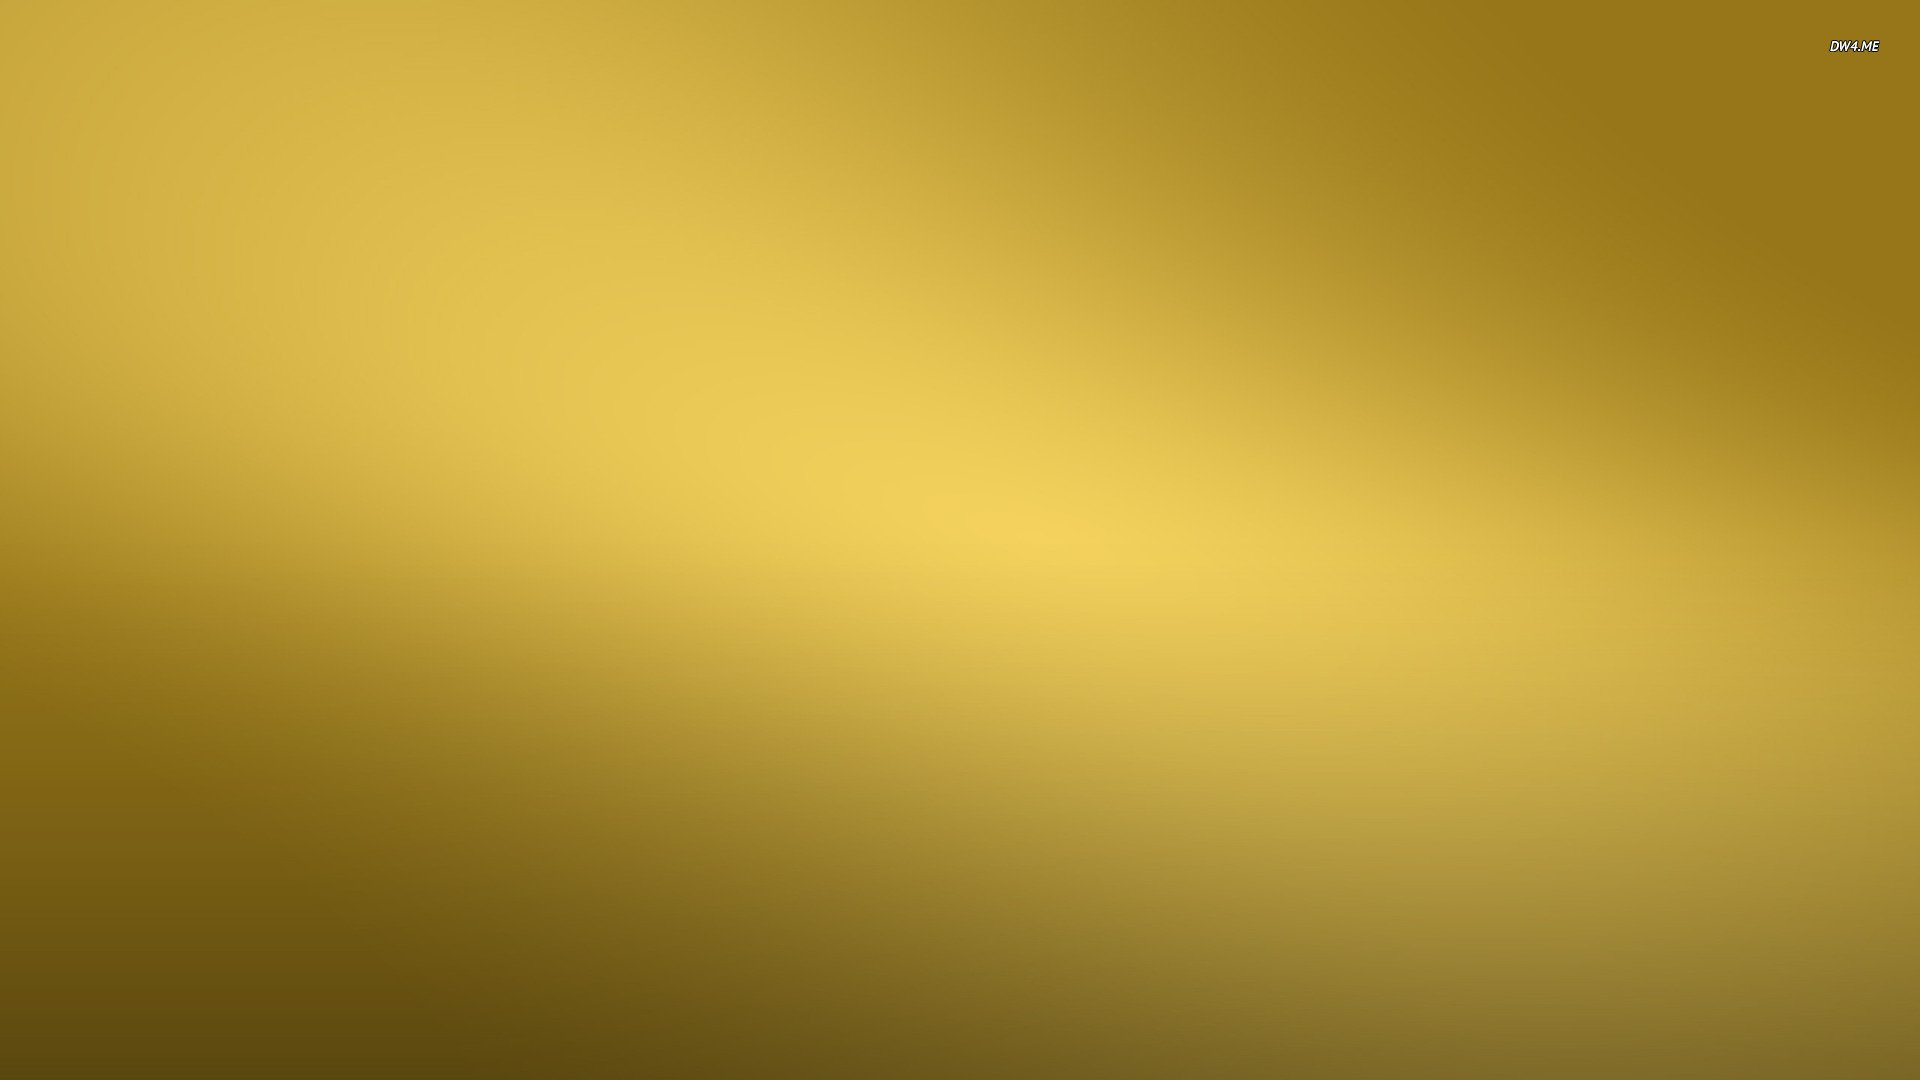 Gold wallpaper   Minimalistic wallpapers   389 1920x1080